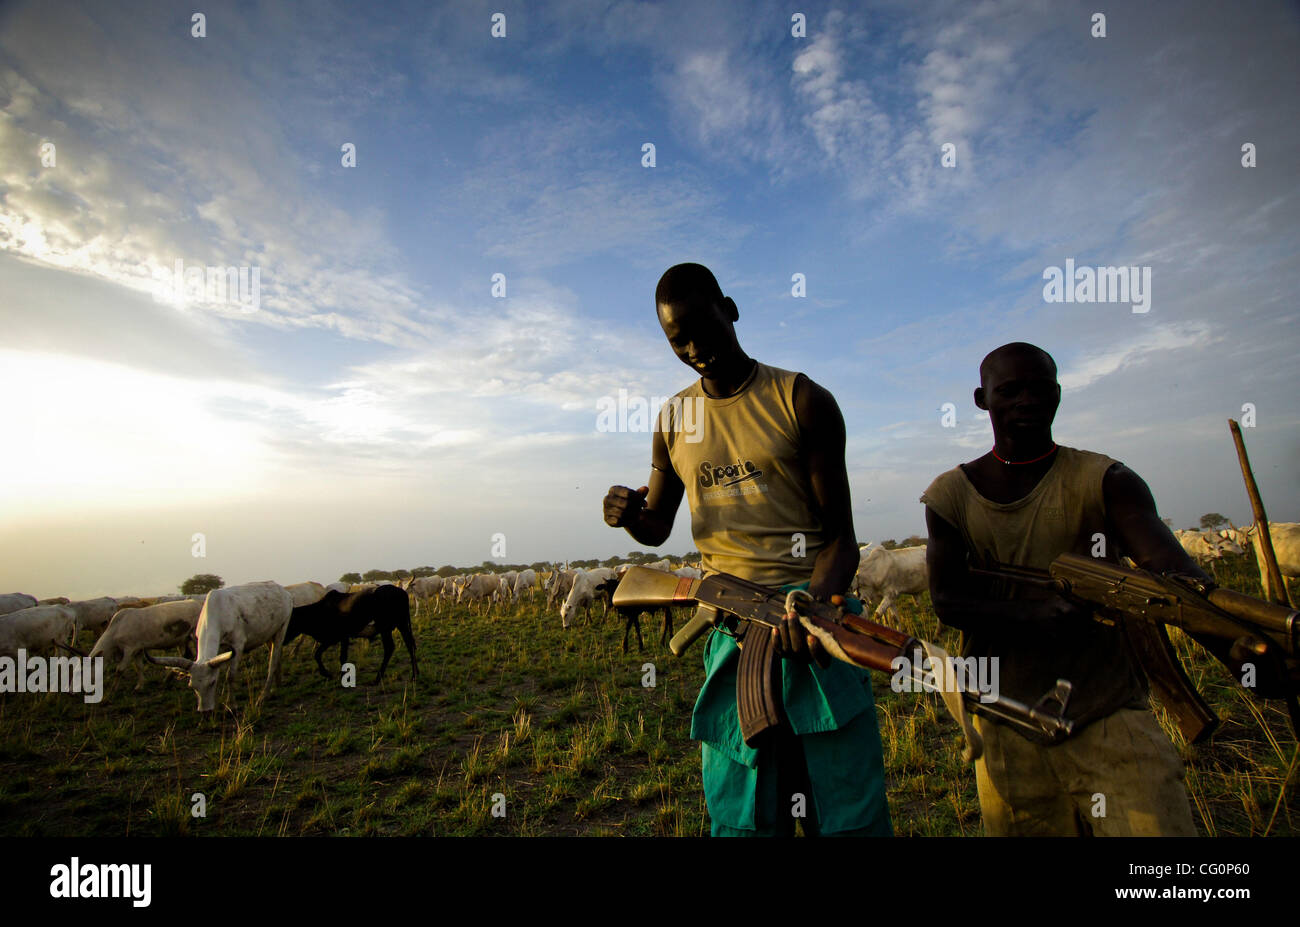 Jul 11, 2007 - Kolmerek, South Sudan - Sudan cattle camps are the most important aspect in the culture of the Dinka, - Stock Image